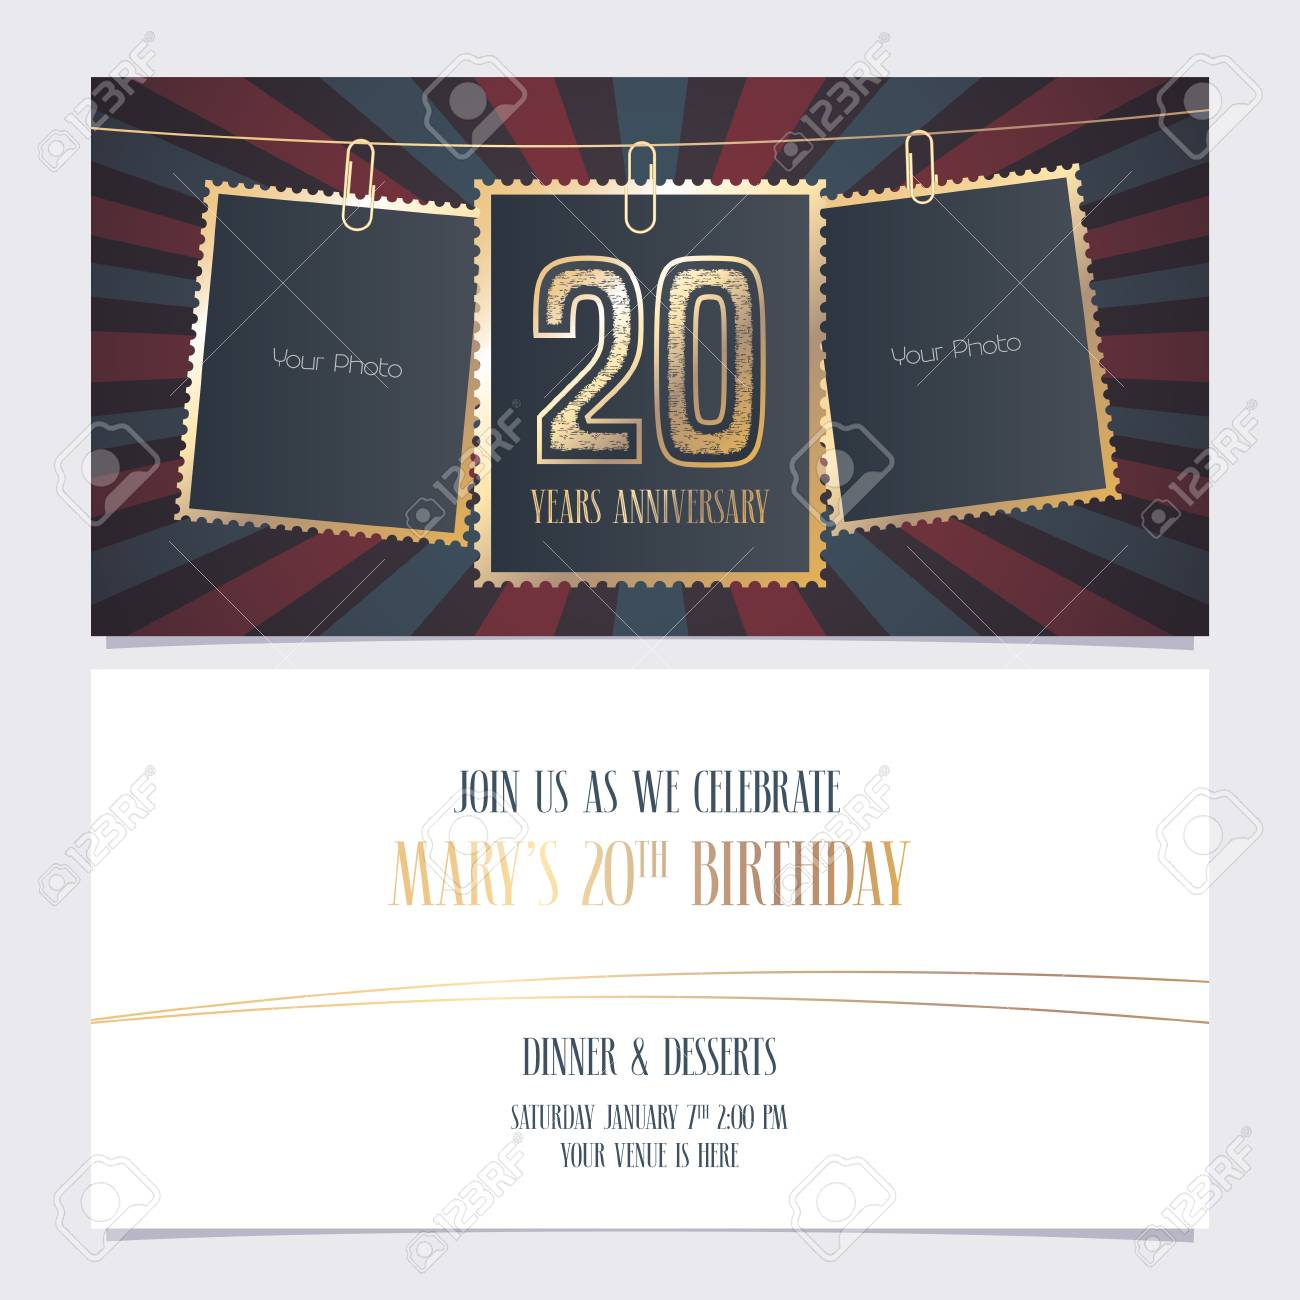 20 years anniversary party invitation vector template illustration